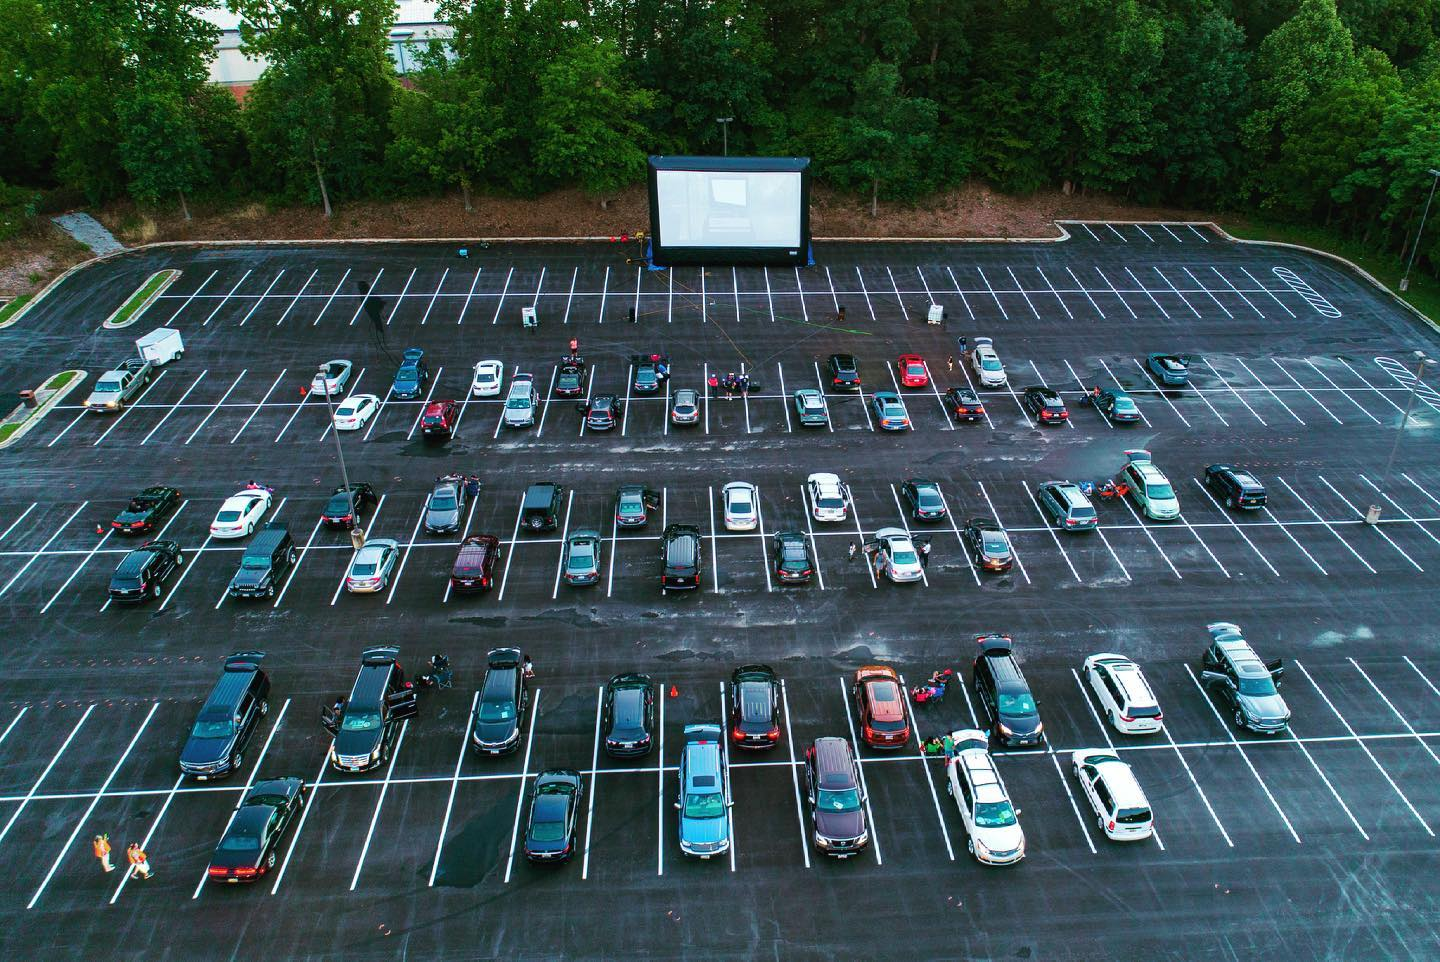 Parks and Recreation programs can include a drive in movie night as a summer program